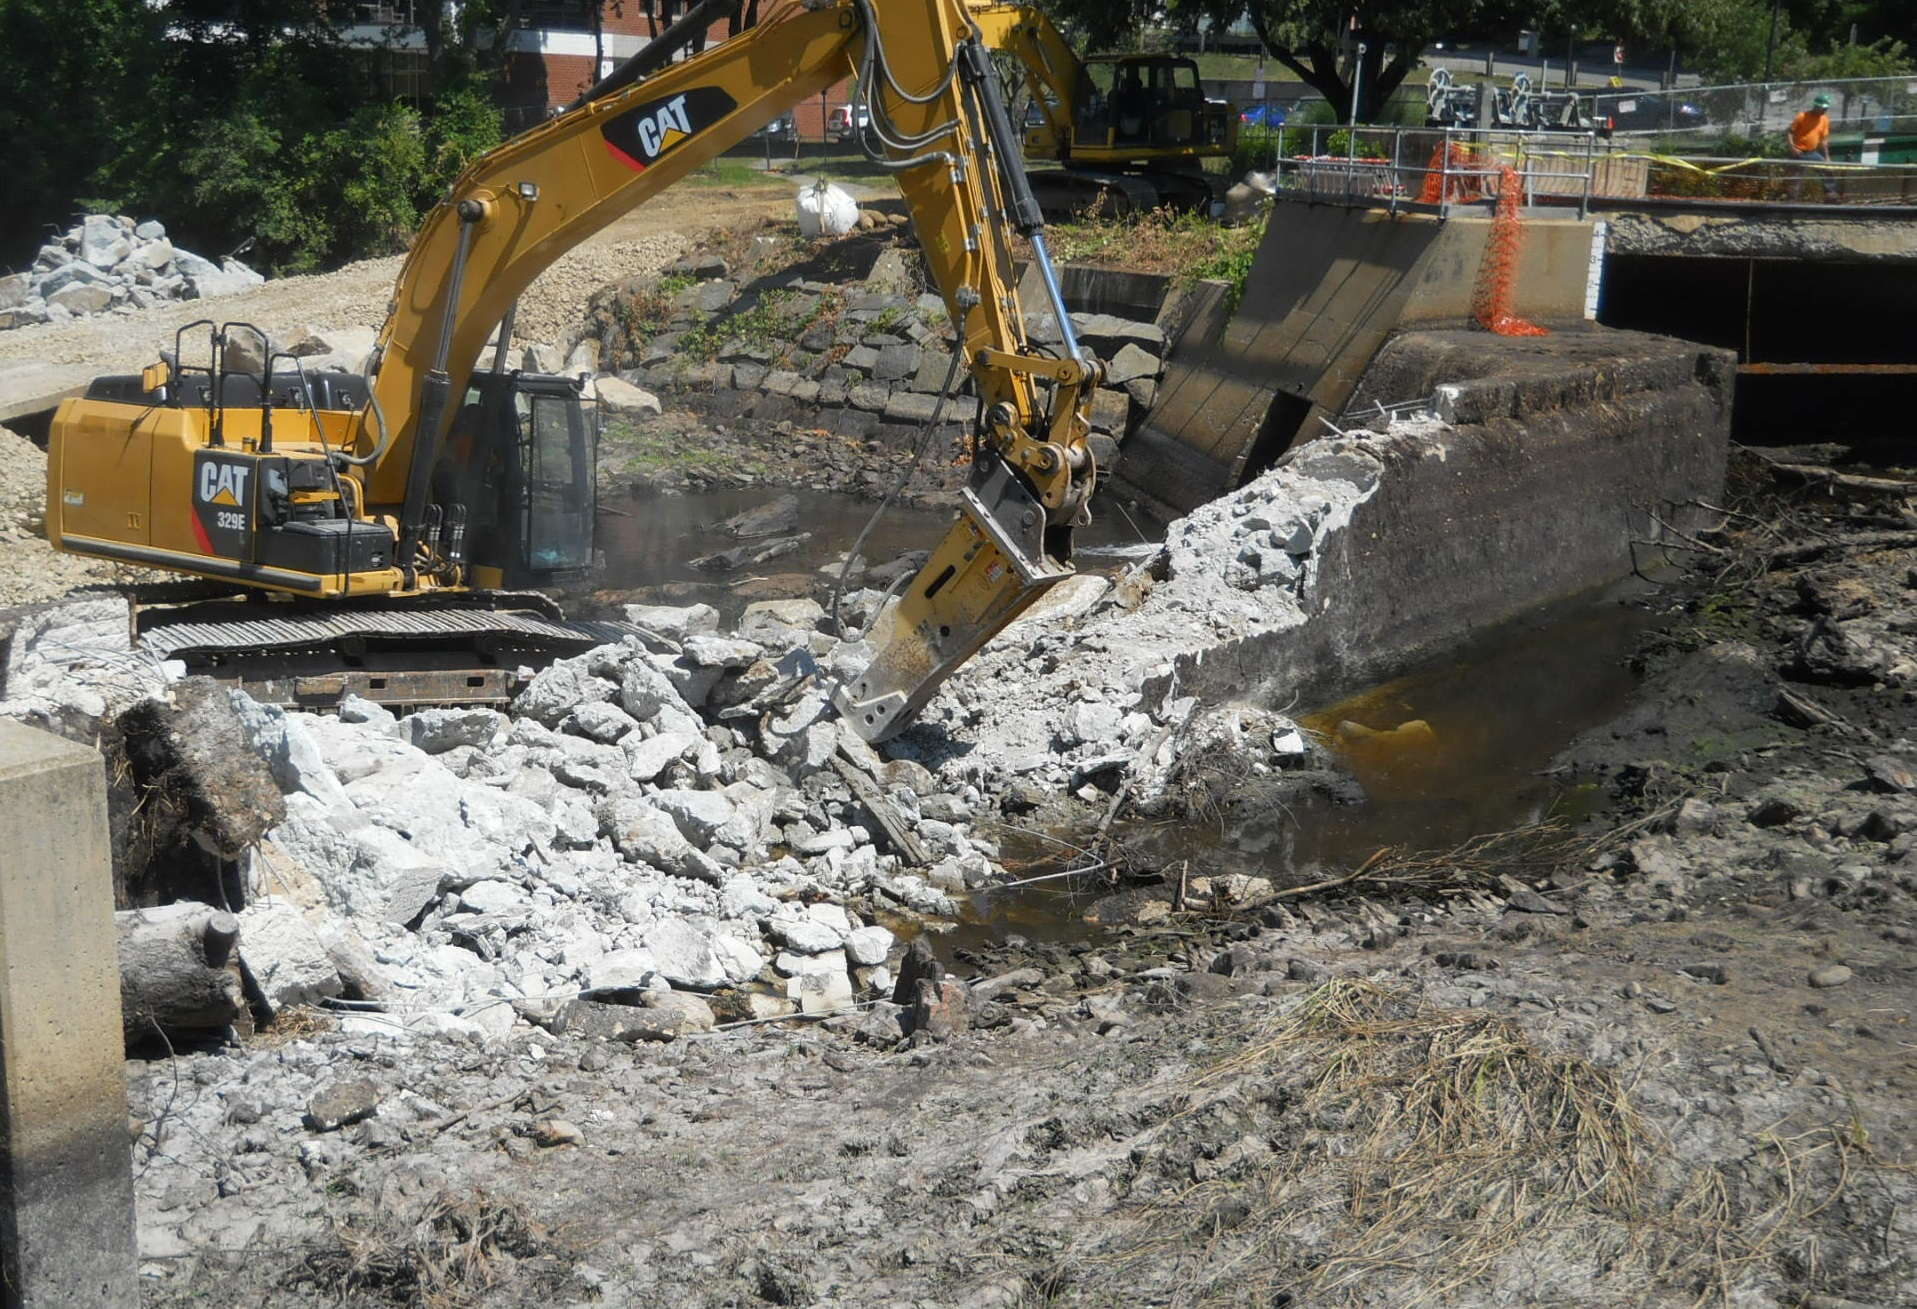 excavator removing great dam in exeter.